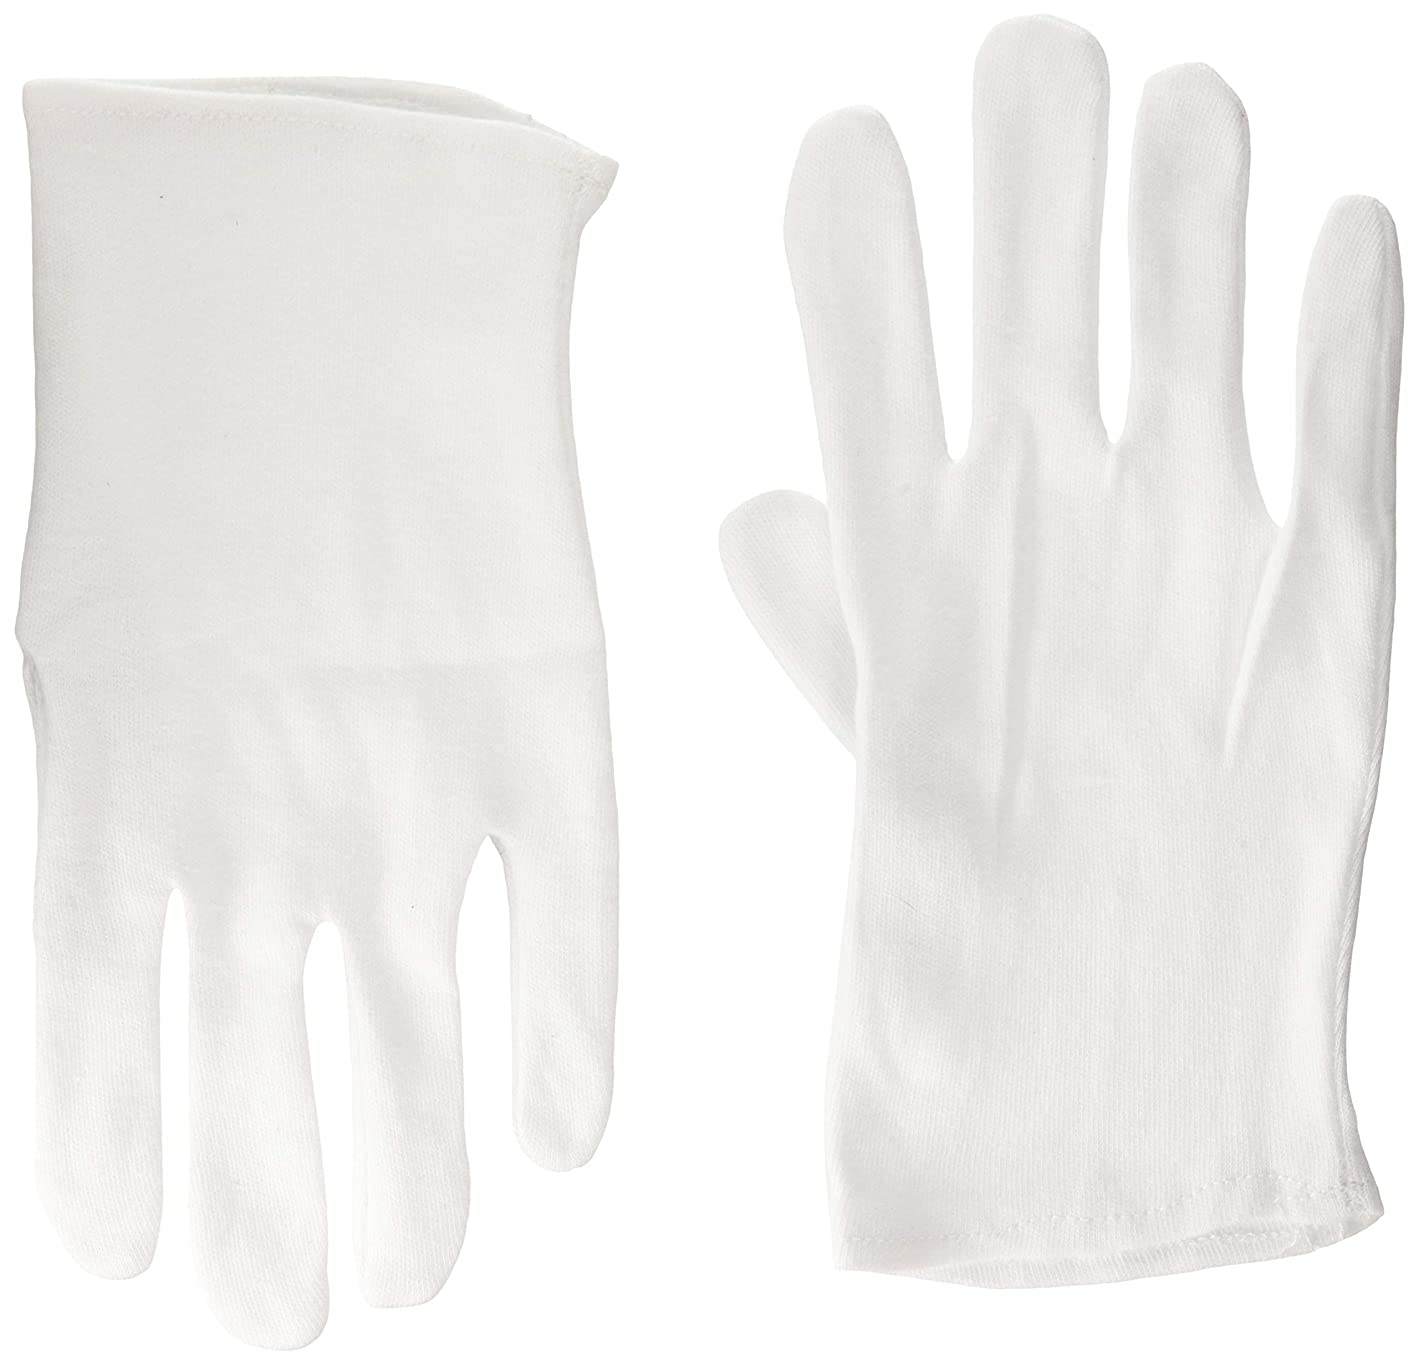 Hagerty 15900 Jewelry Handling Gloves Non-Treated 1 Pair White u14113111040992